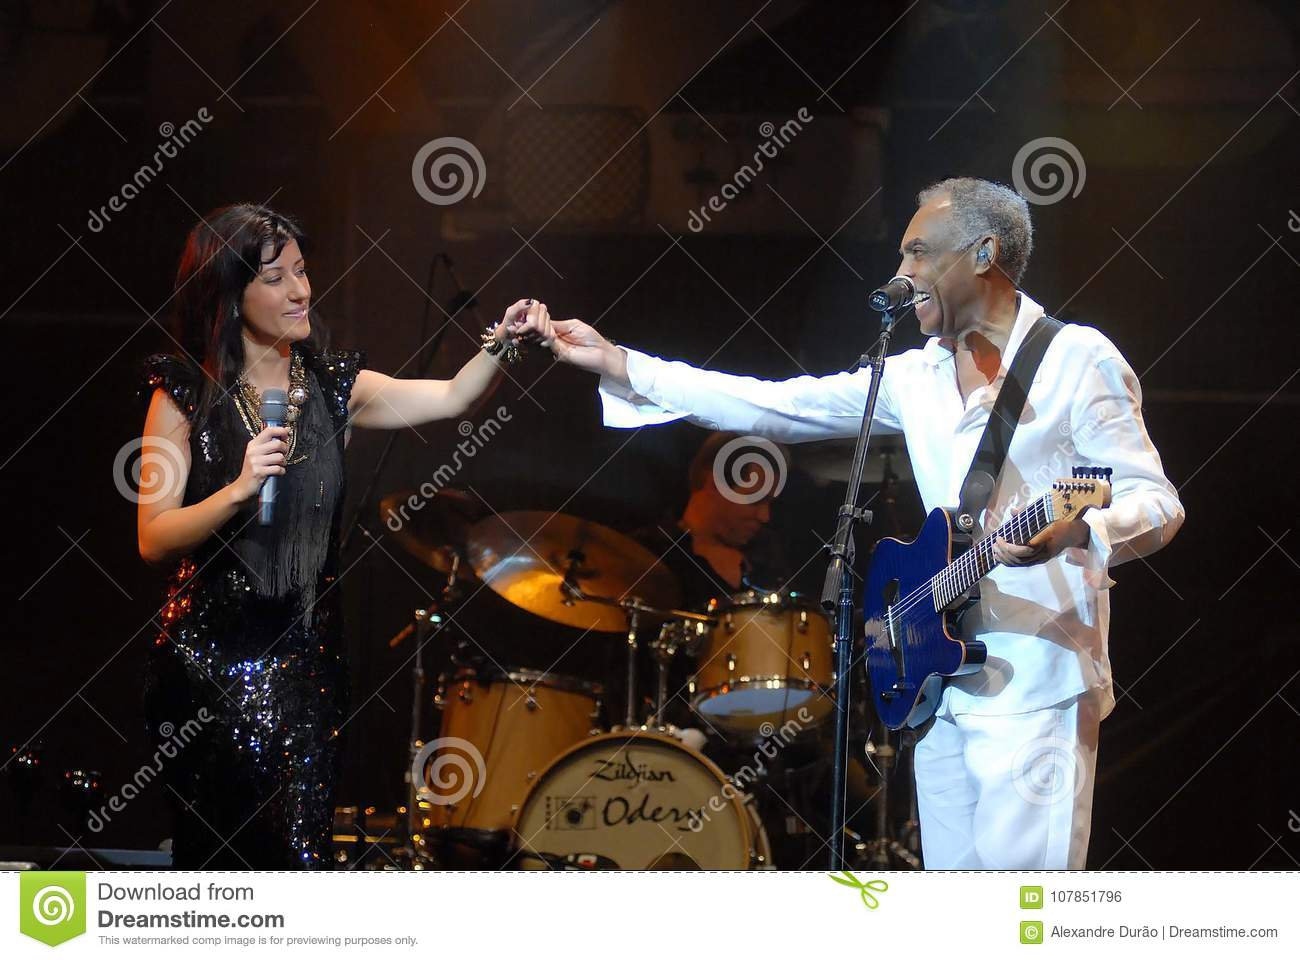 ab2b7aa6e0911 Rio de Janeiro, Brazil, August 26, 2011.Portuguese singer Ana Moura and  Brazilian singer Gilberto Gil during her show at the Back2Black Festival at  ...